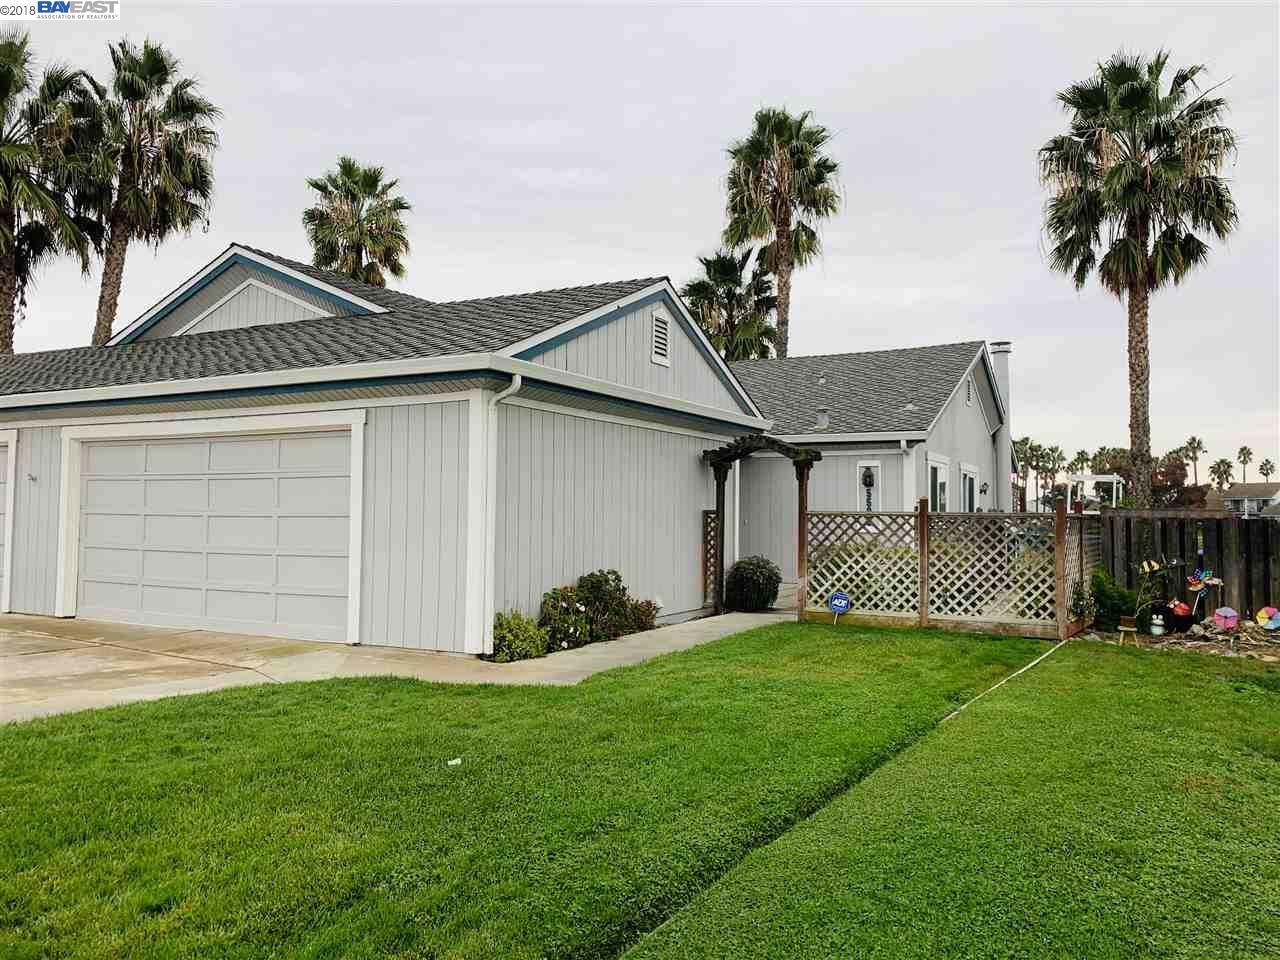 5592 Marlin Dr, DISCOVERY BAY, CA 94505